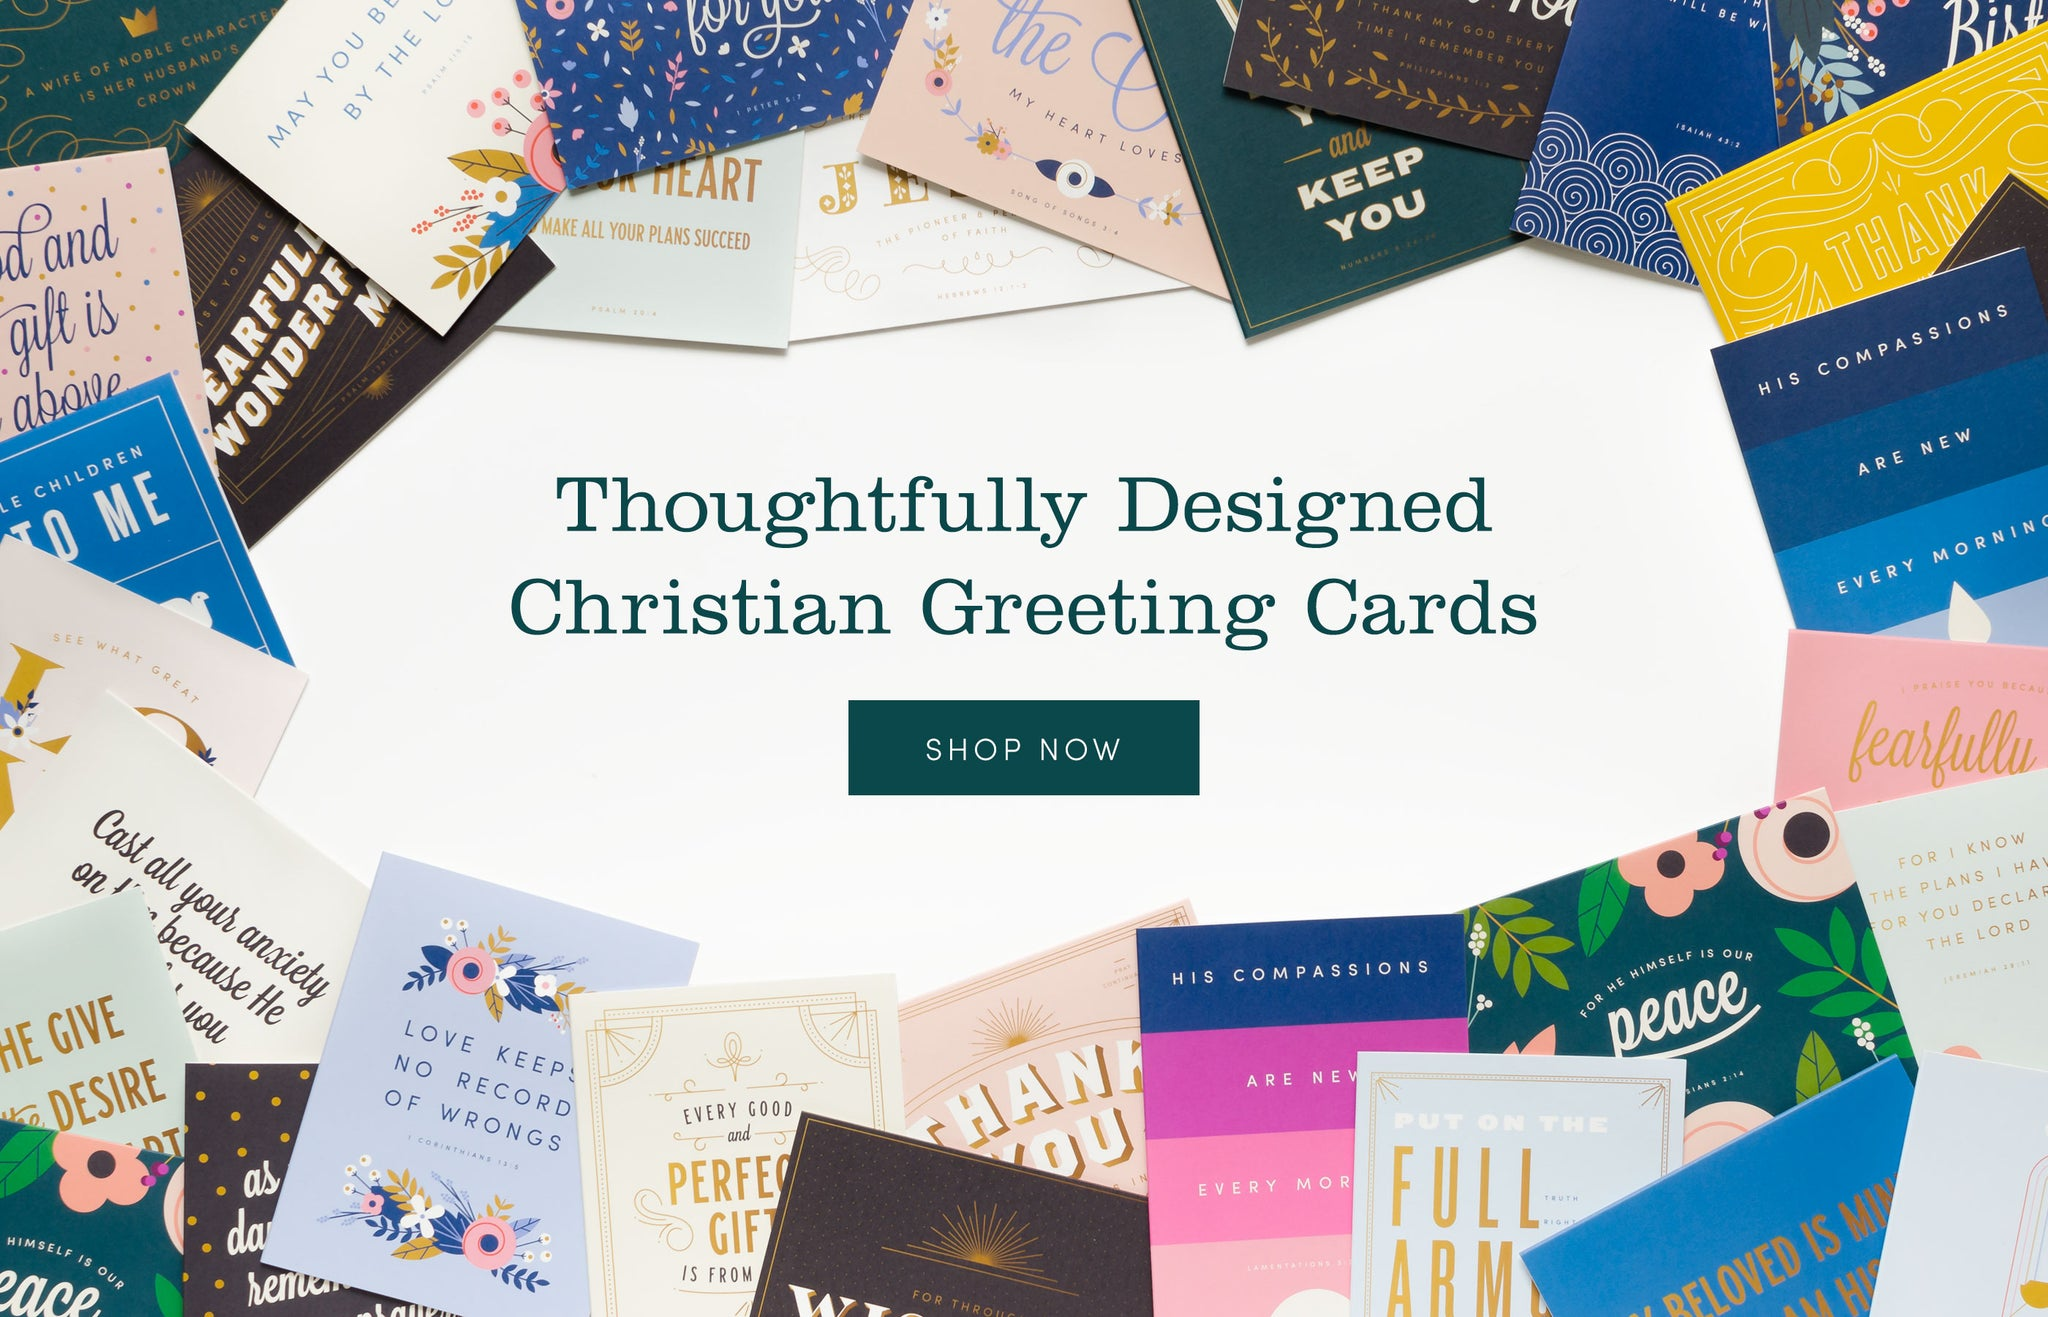 Christian Greeting Cards from Evermorn Supply